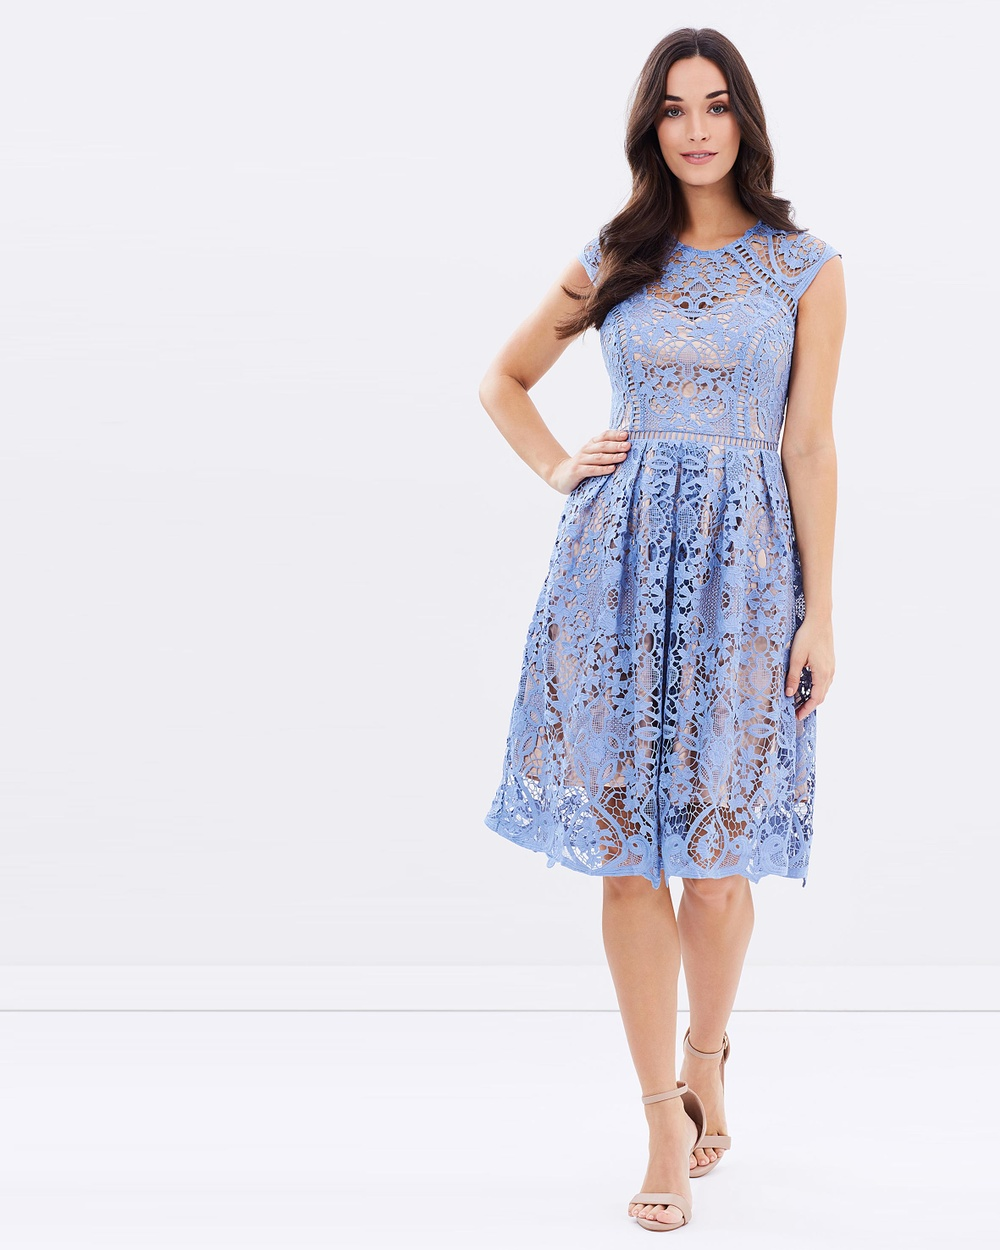 Lipsy VIP Cornflower Lace Dress Dresses Cornflower VIP Cornflower Lace Dress